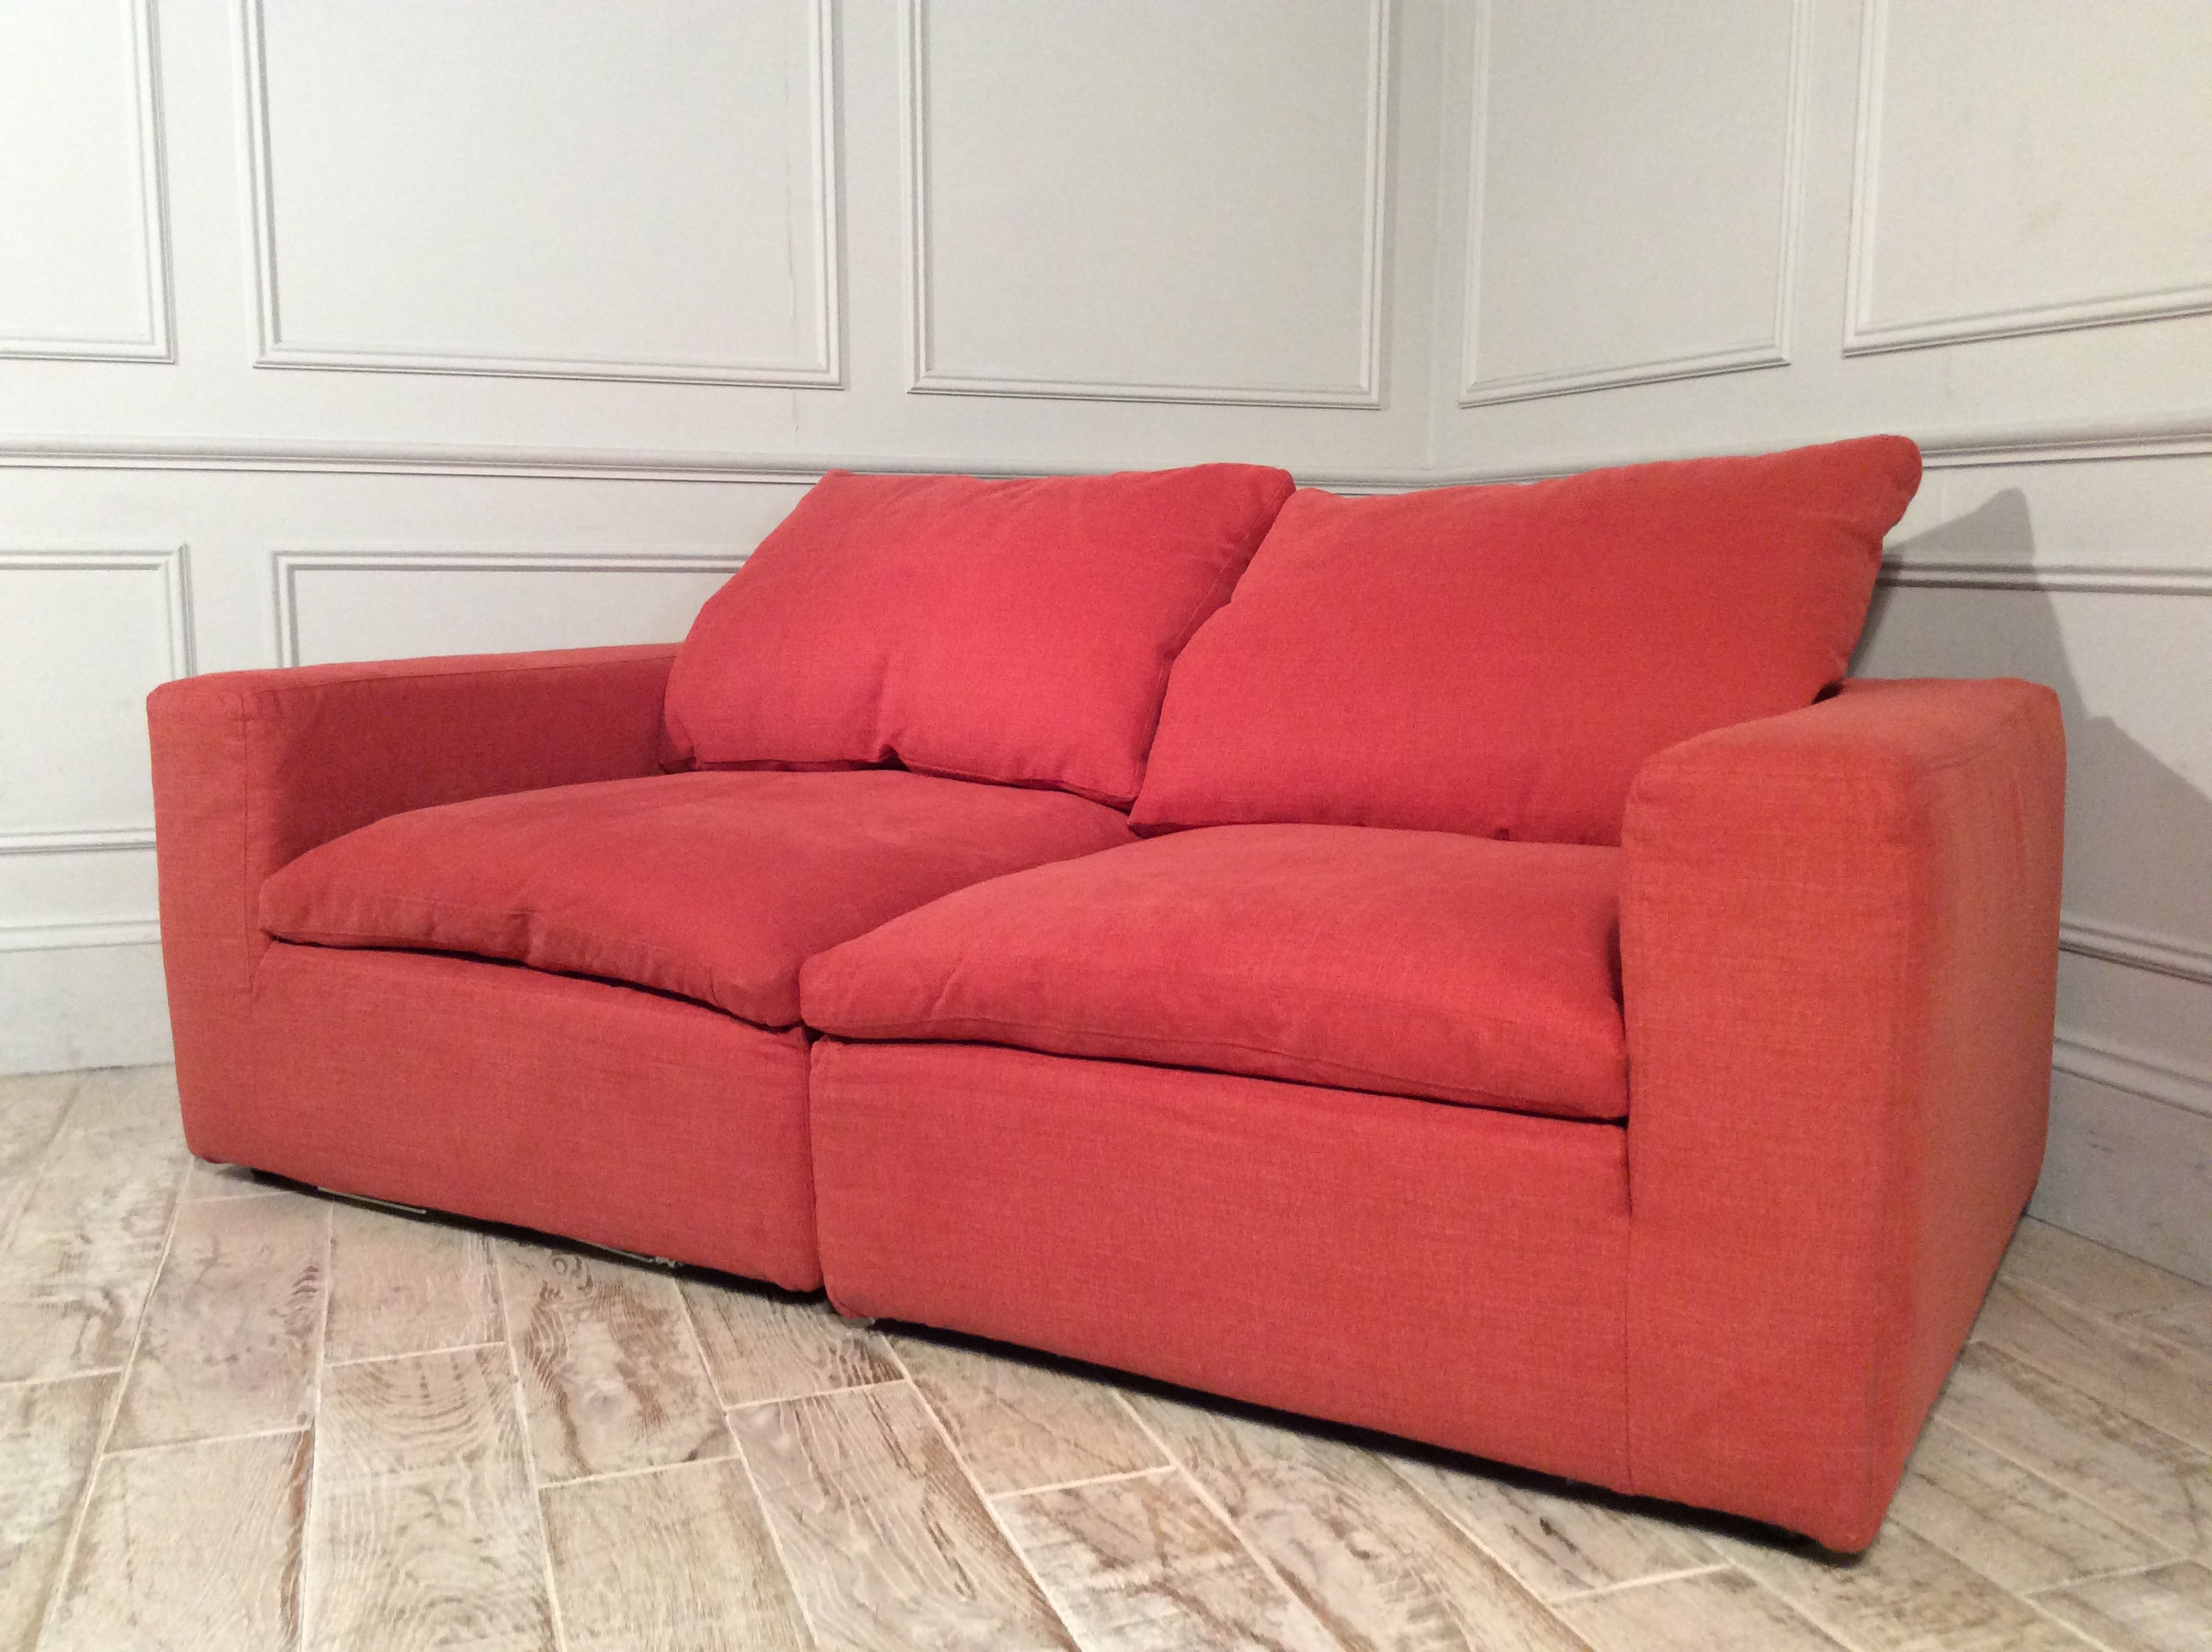 Feather Standard Fabric 3 Seater Sofa in Ginger Snap